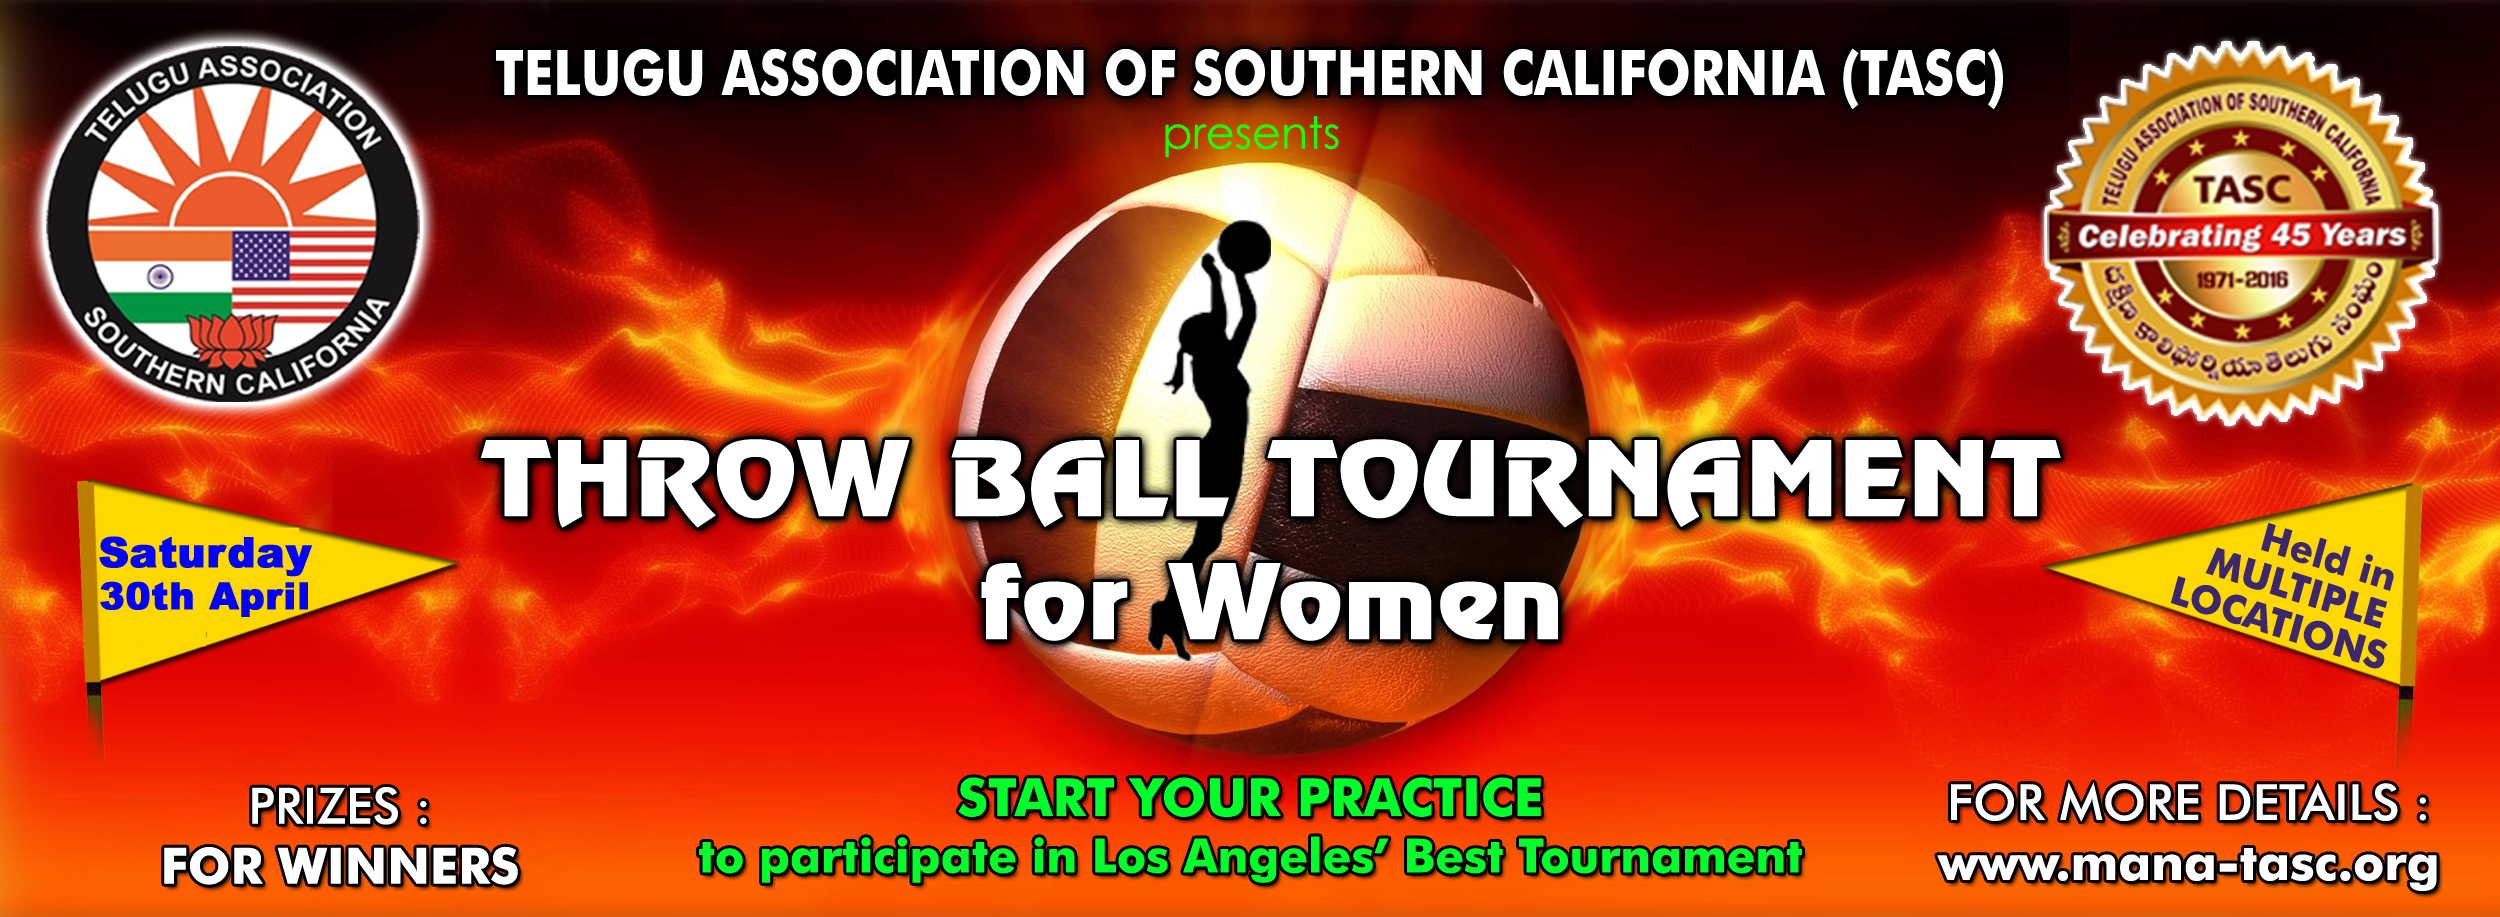 Throwball Tournament for Women